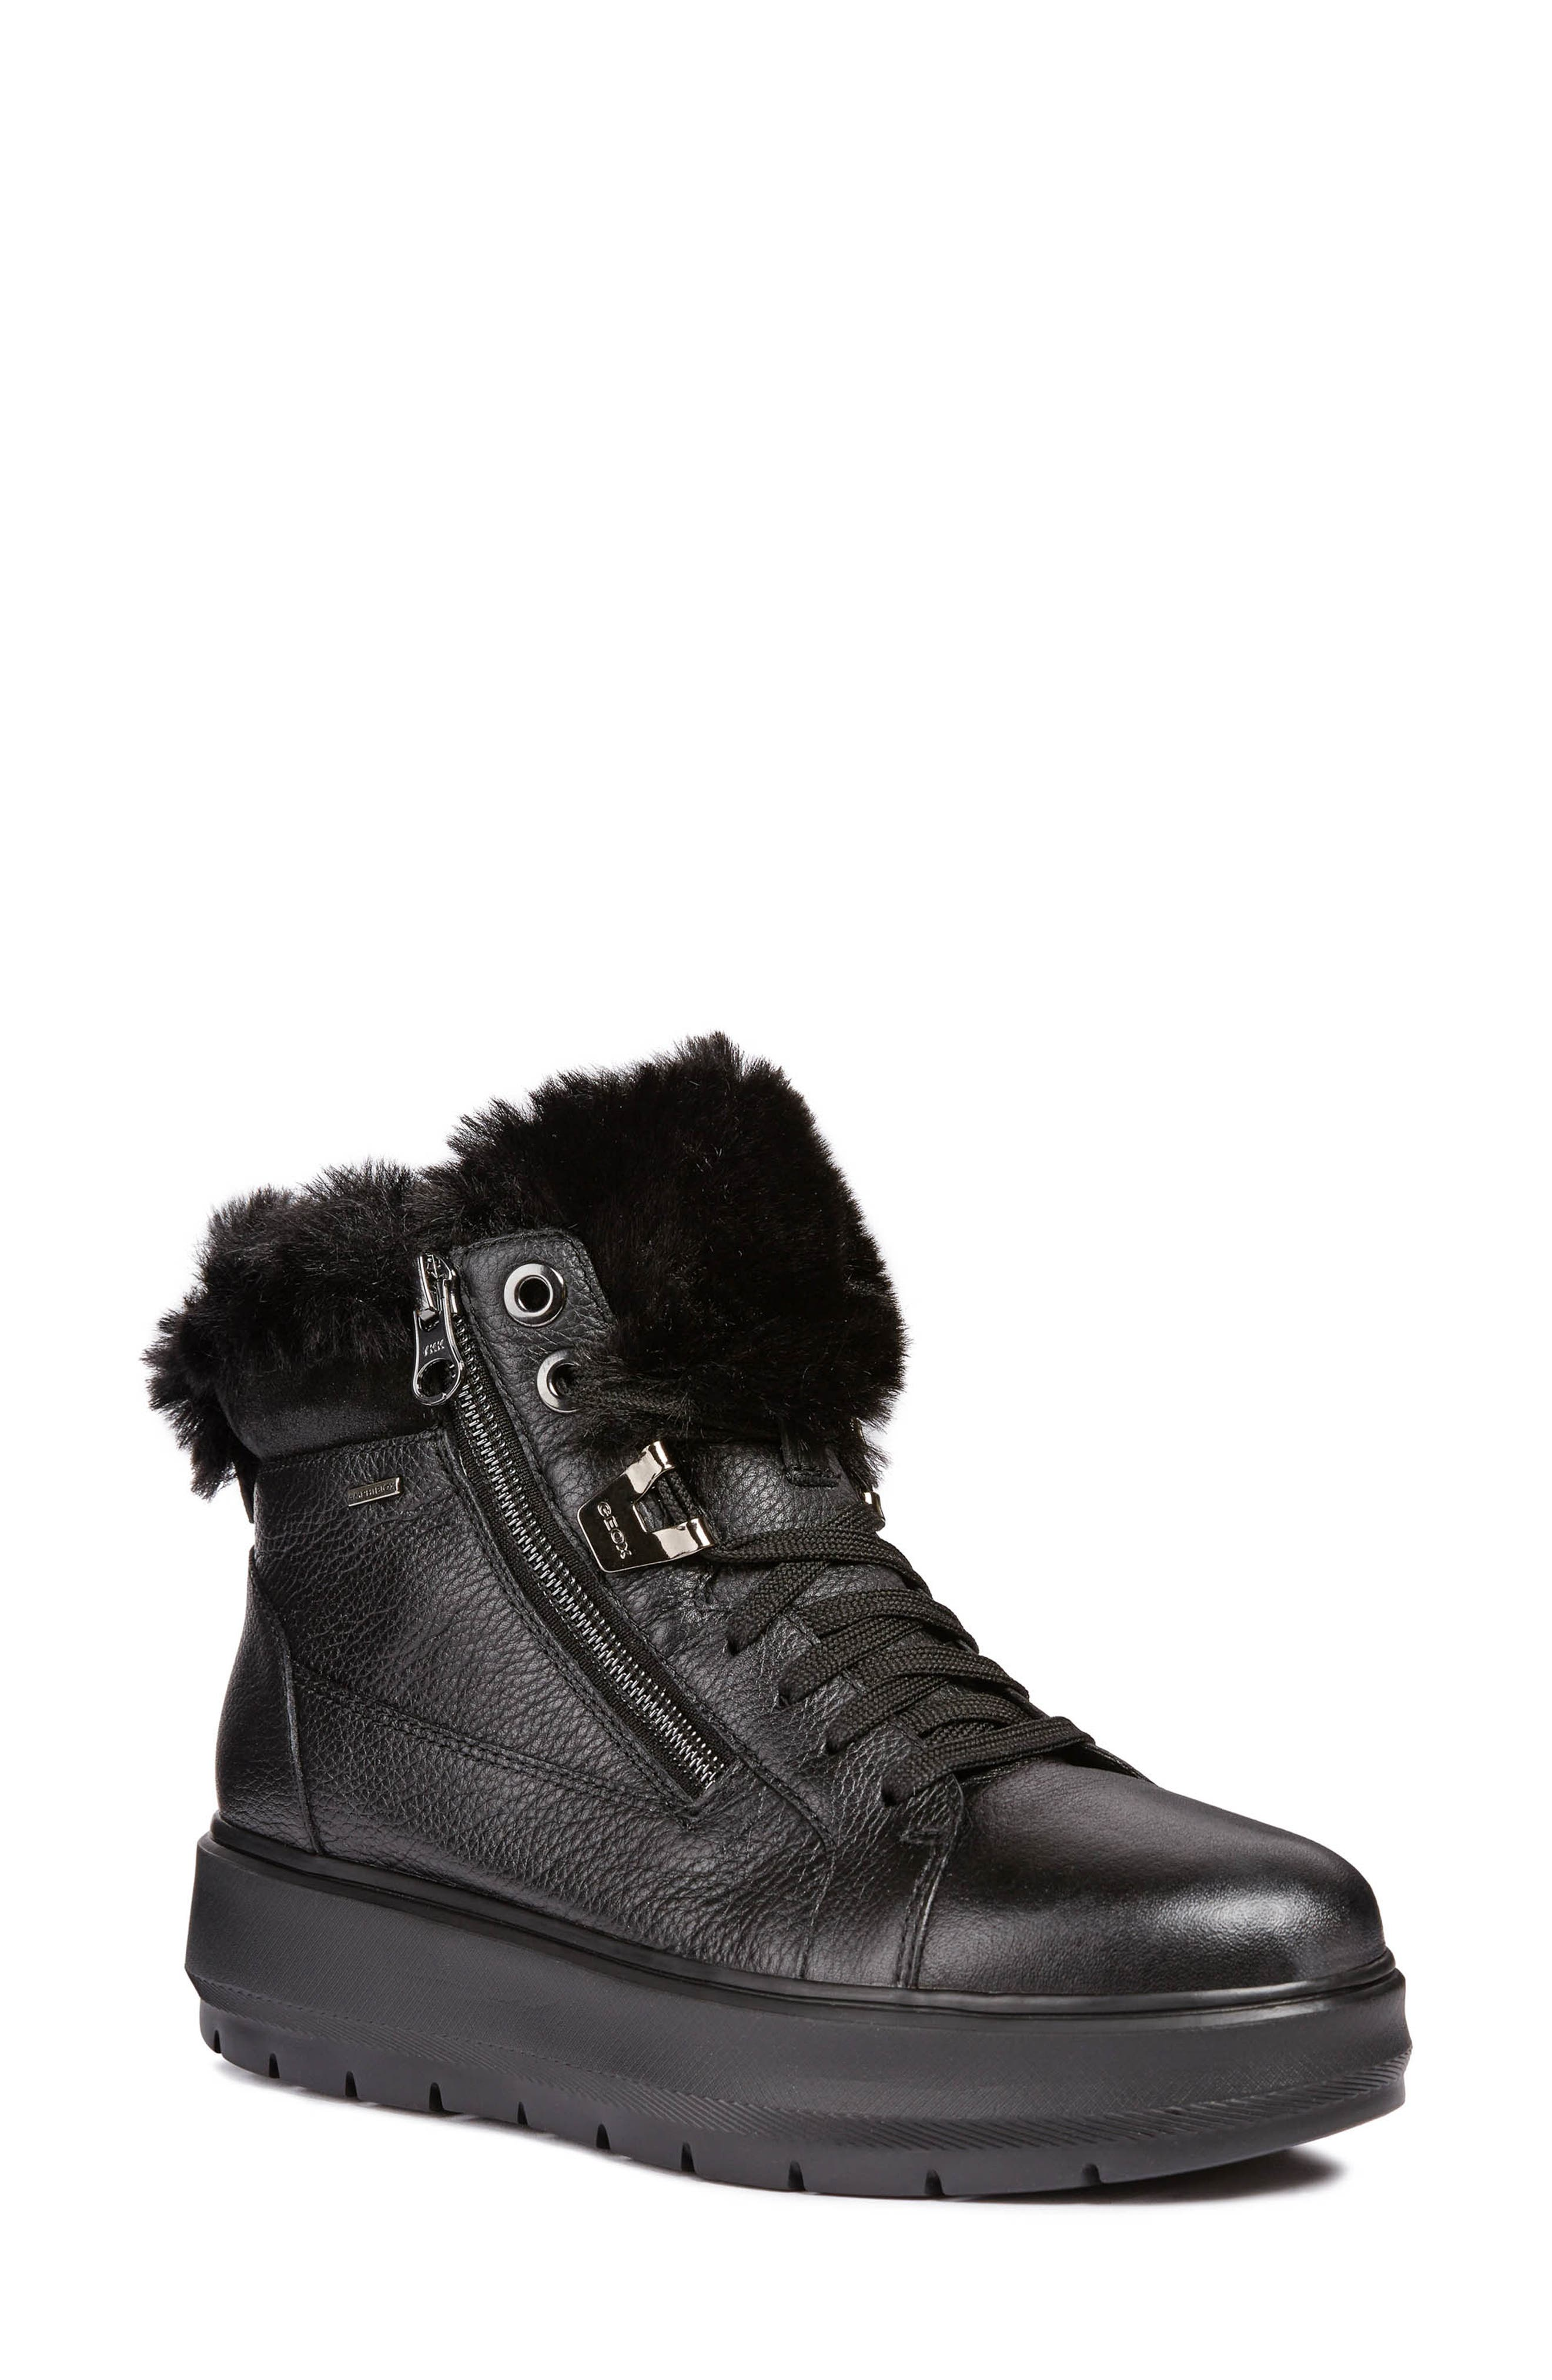 Kaula ABX Waterproof Faux-Fur Cuff Sneaker,                         Main,                         color, BLACK LEATHER